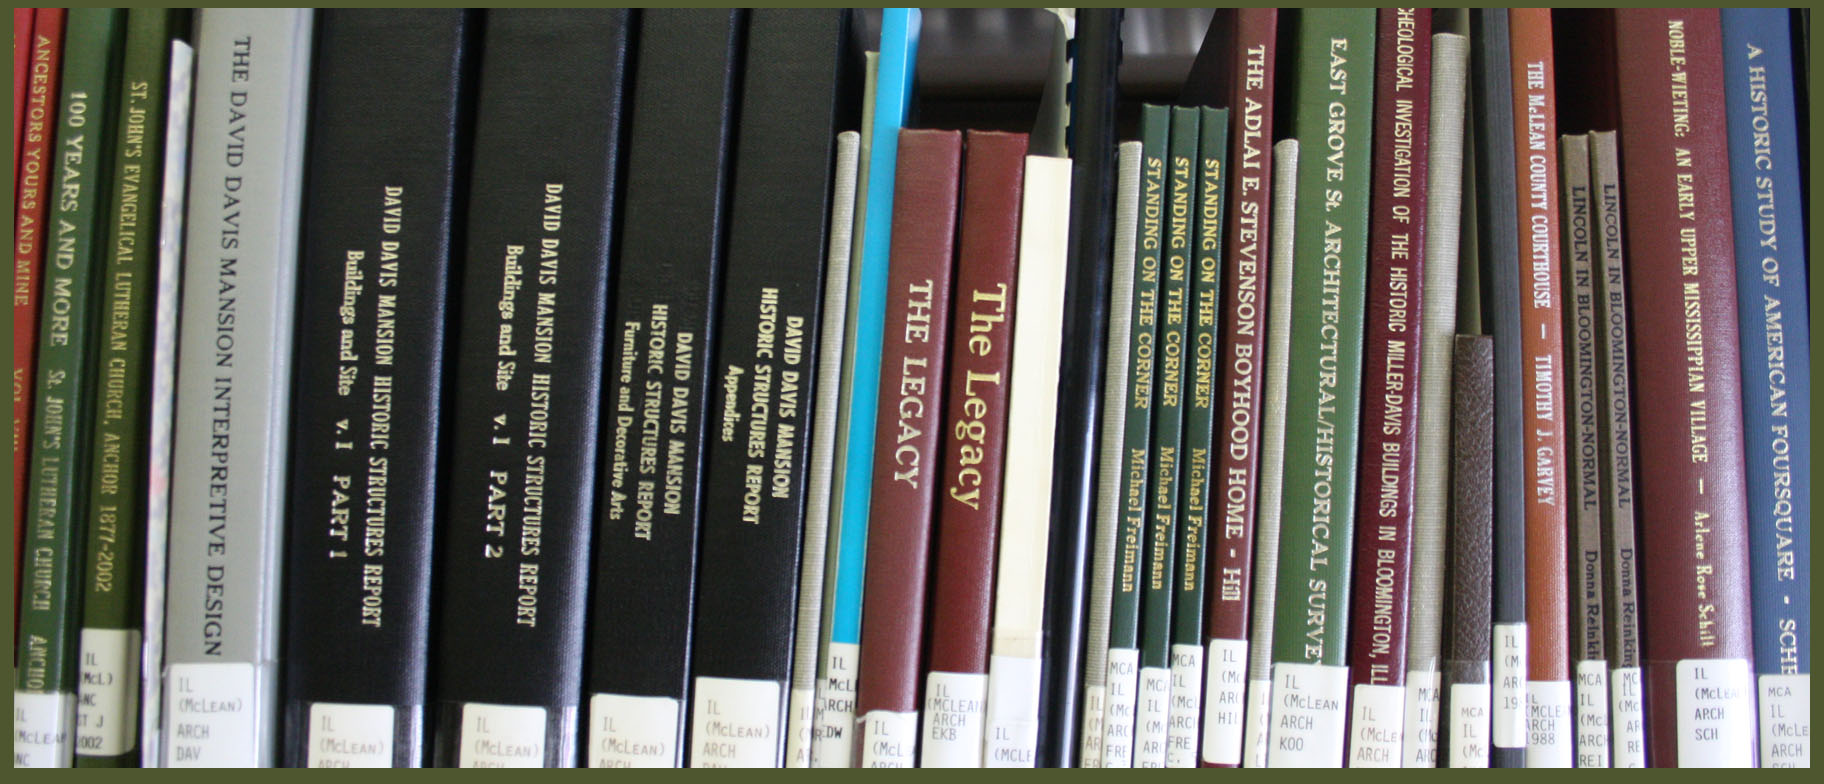 Books in the Stevenson-Ives Library.